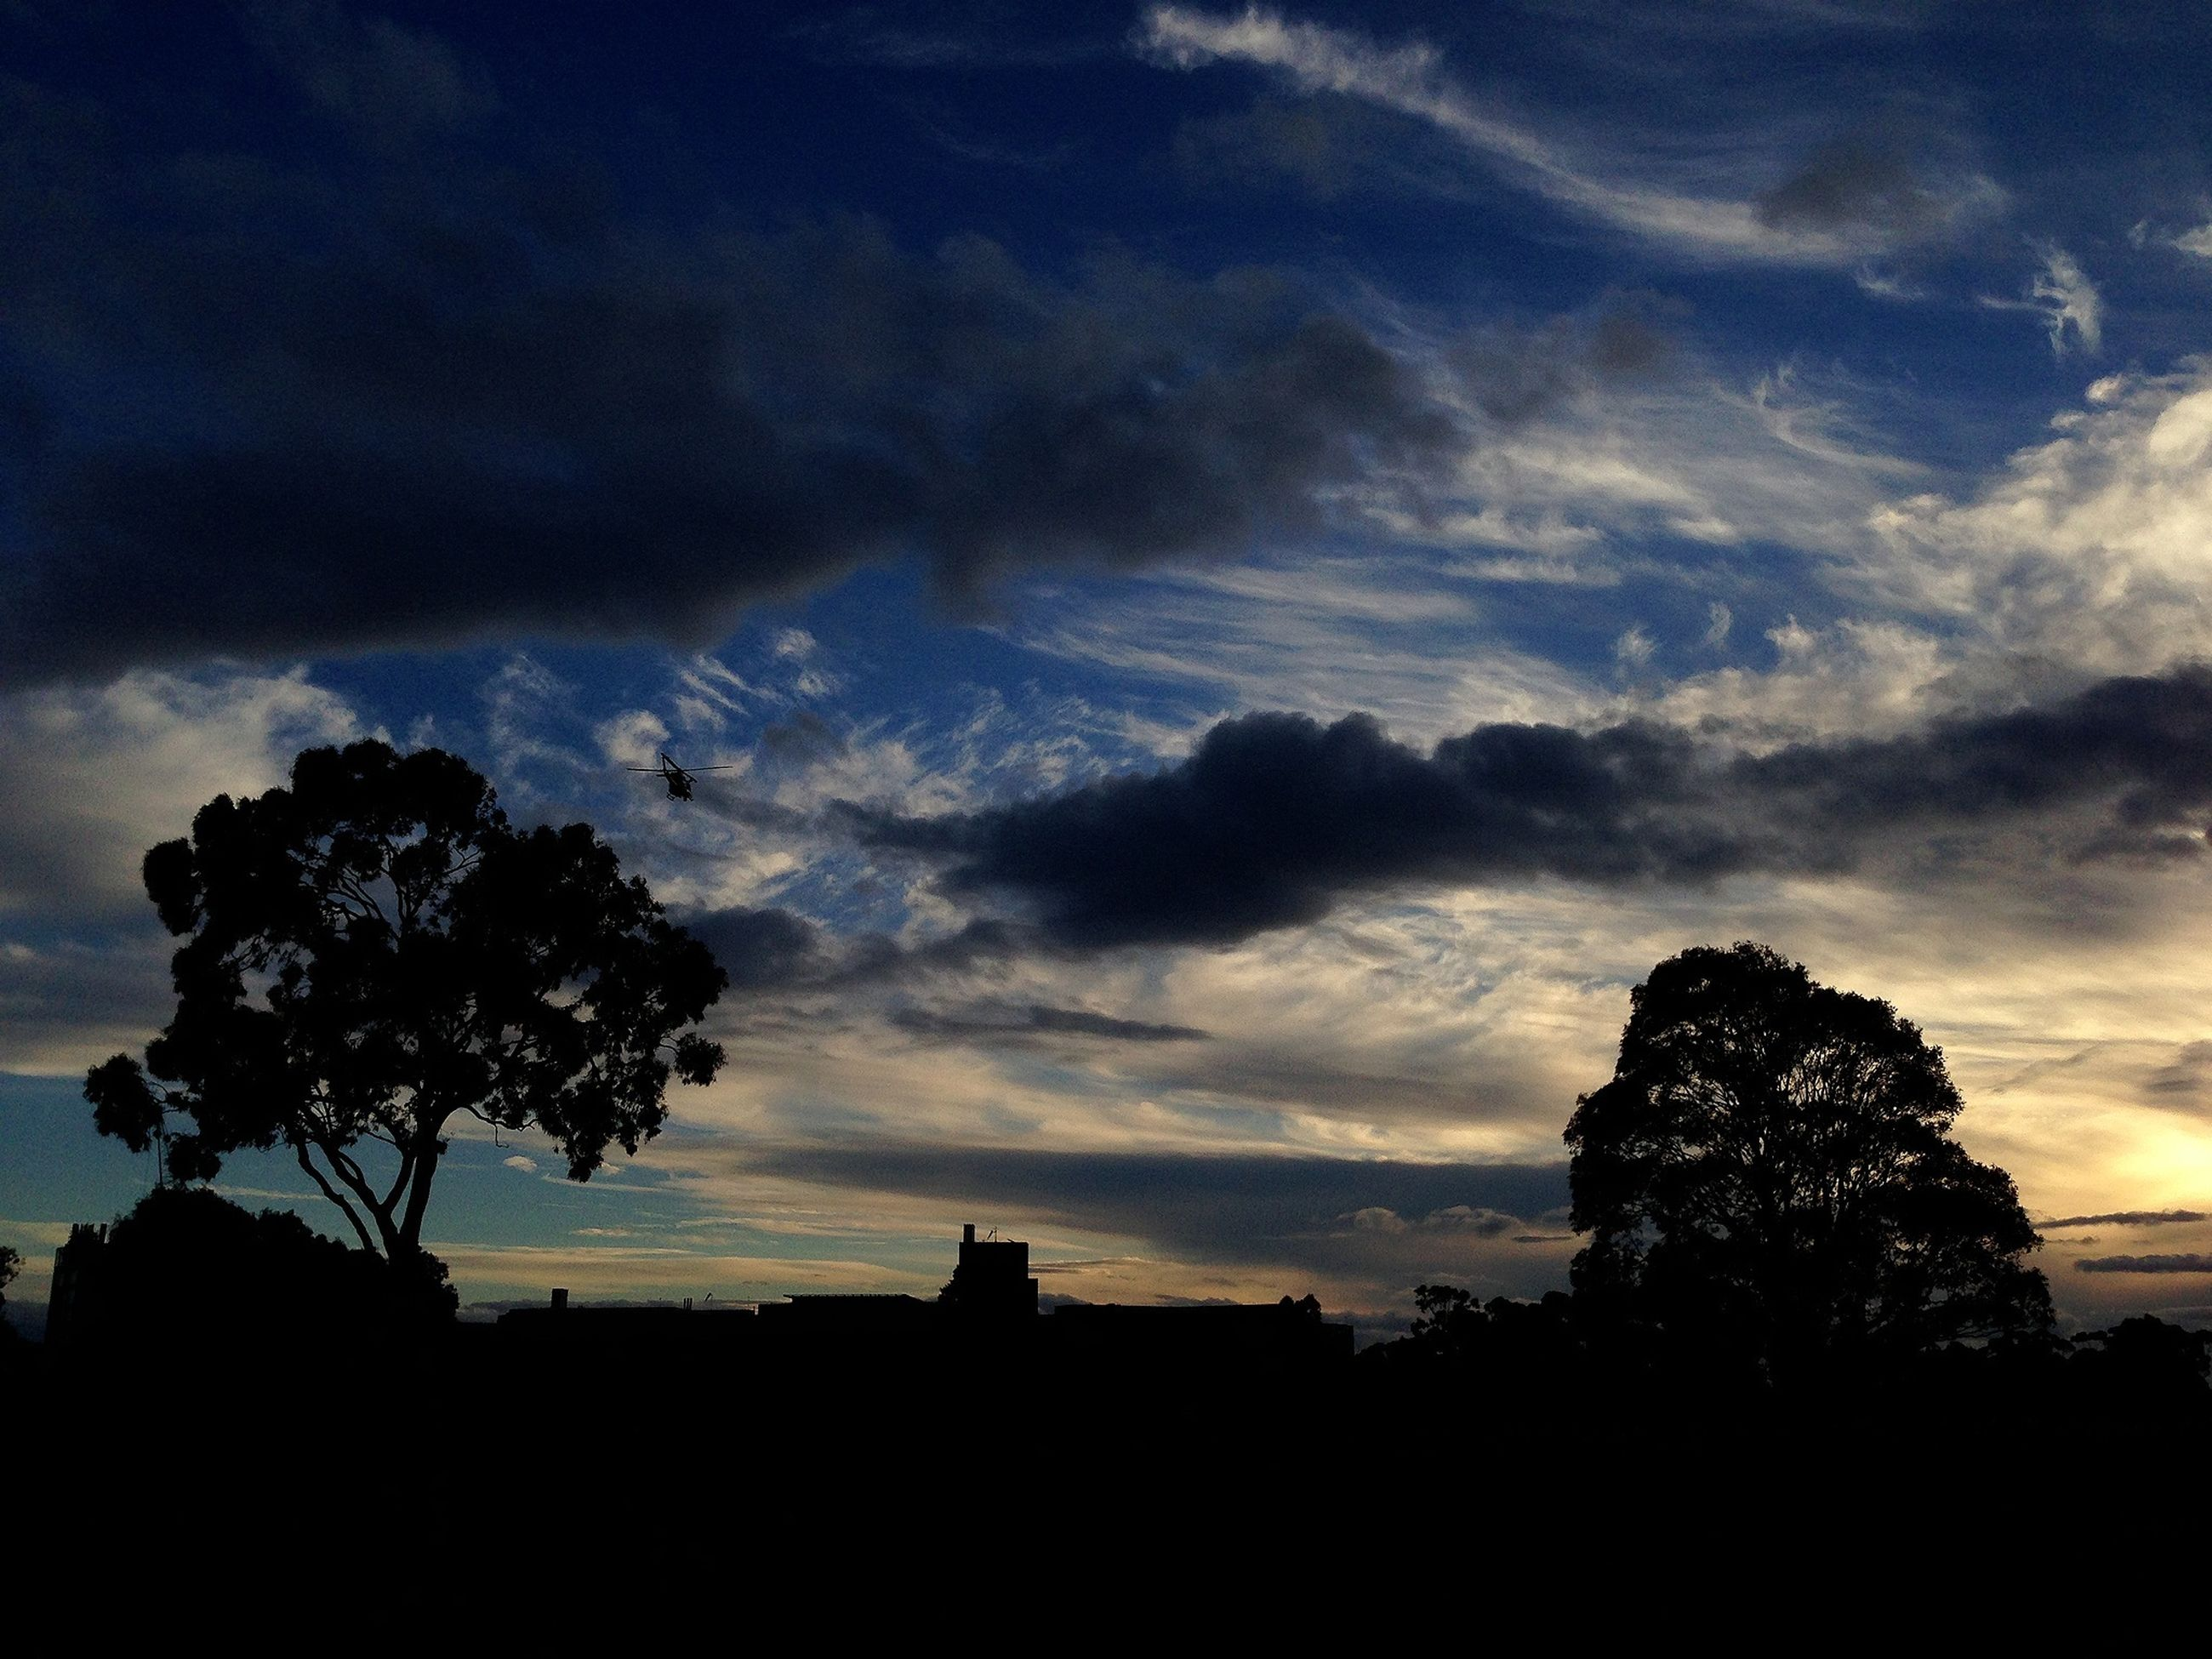 silhouette, sky, cloud - sky, tree, sunset, low angle view, cloudy, built structure, cloud, beauty in nature, nature, scenics, dusk, tranquility, building exterior, architecture, tranquil scene, dramatic sky, dark, outline